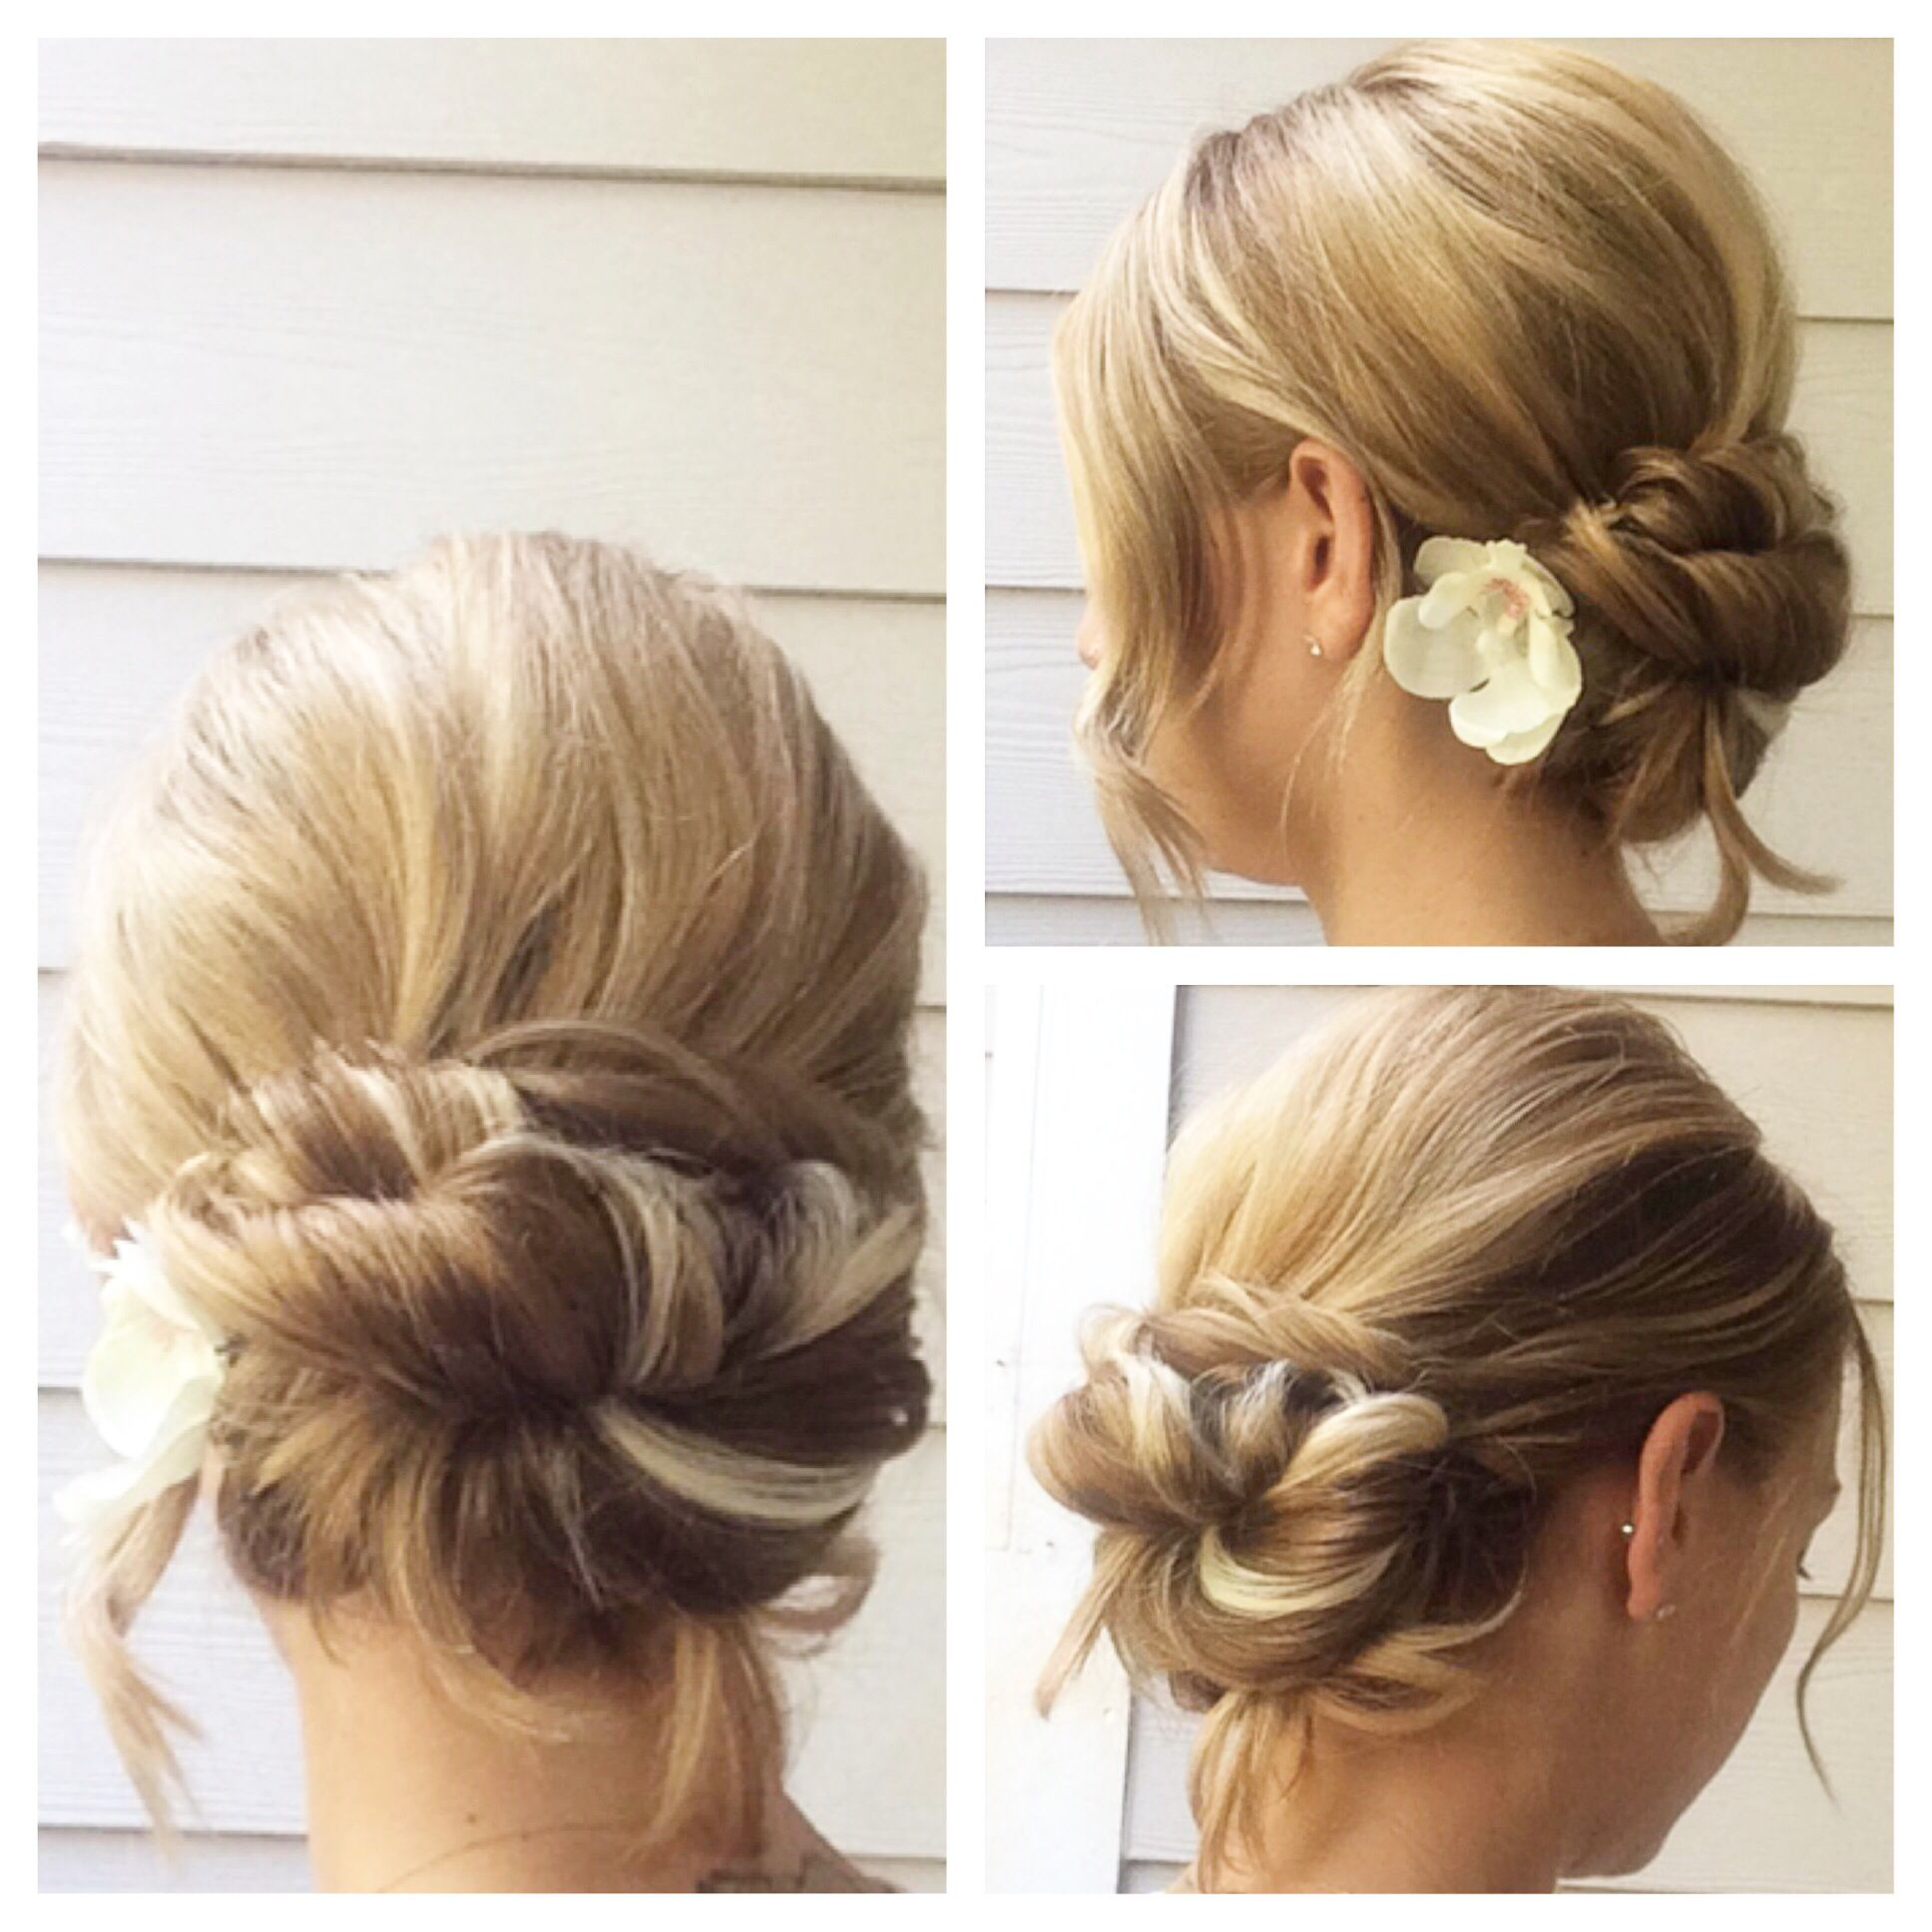 simple, sweet low bun updo freelance bridal hairstylist servicing